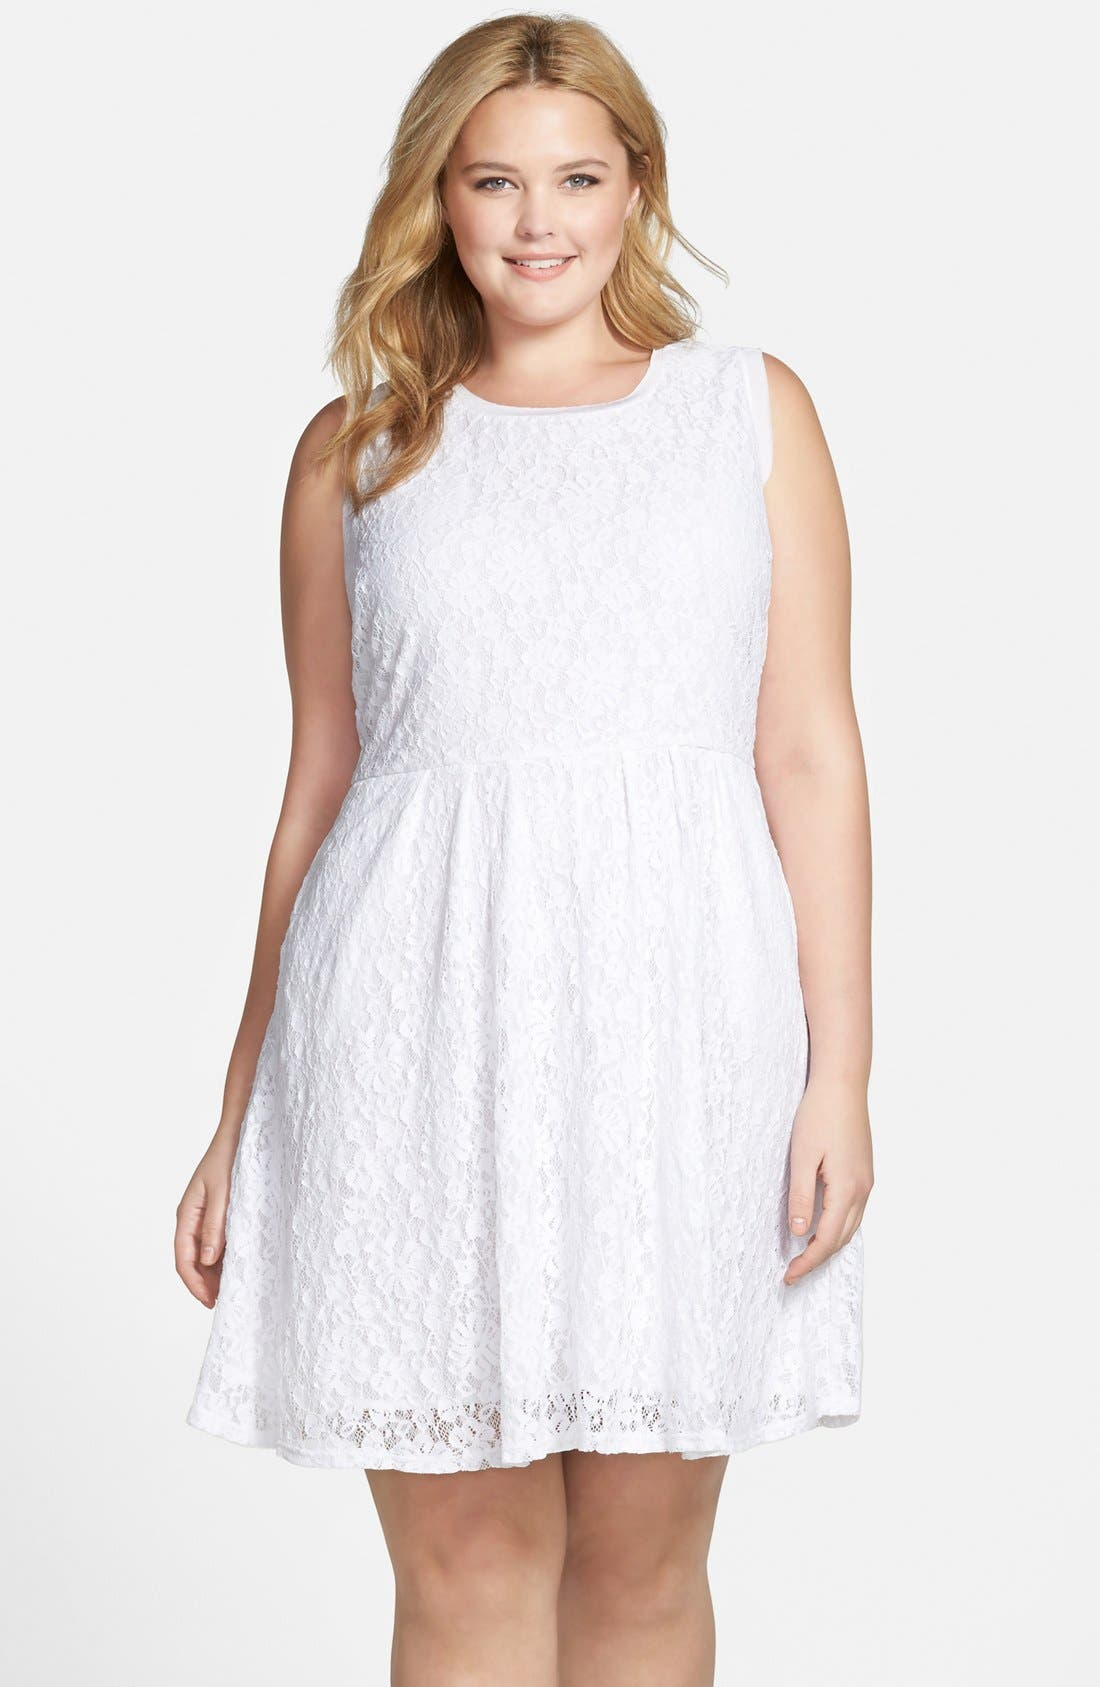 Alternate Image 1 Selected - Two by Vince Camuto Floral Lace Babydoll Dress (Plus Size)